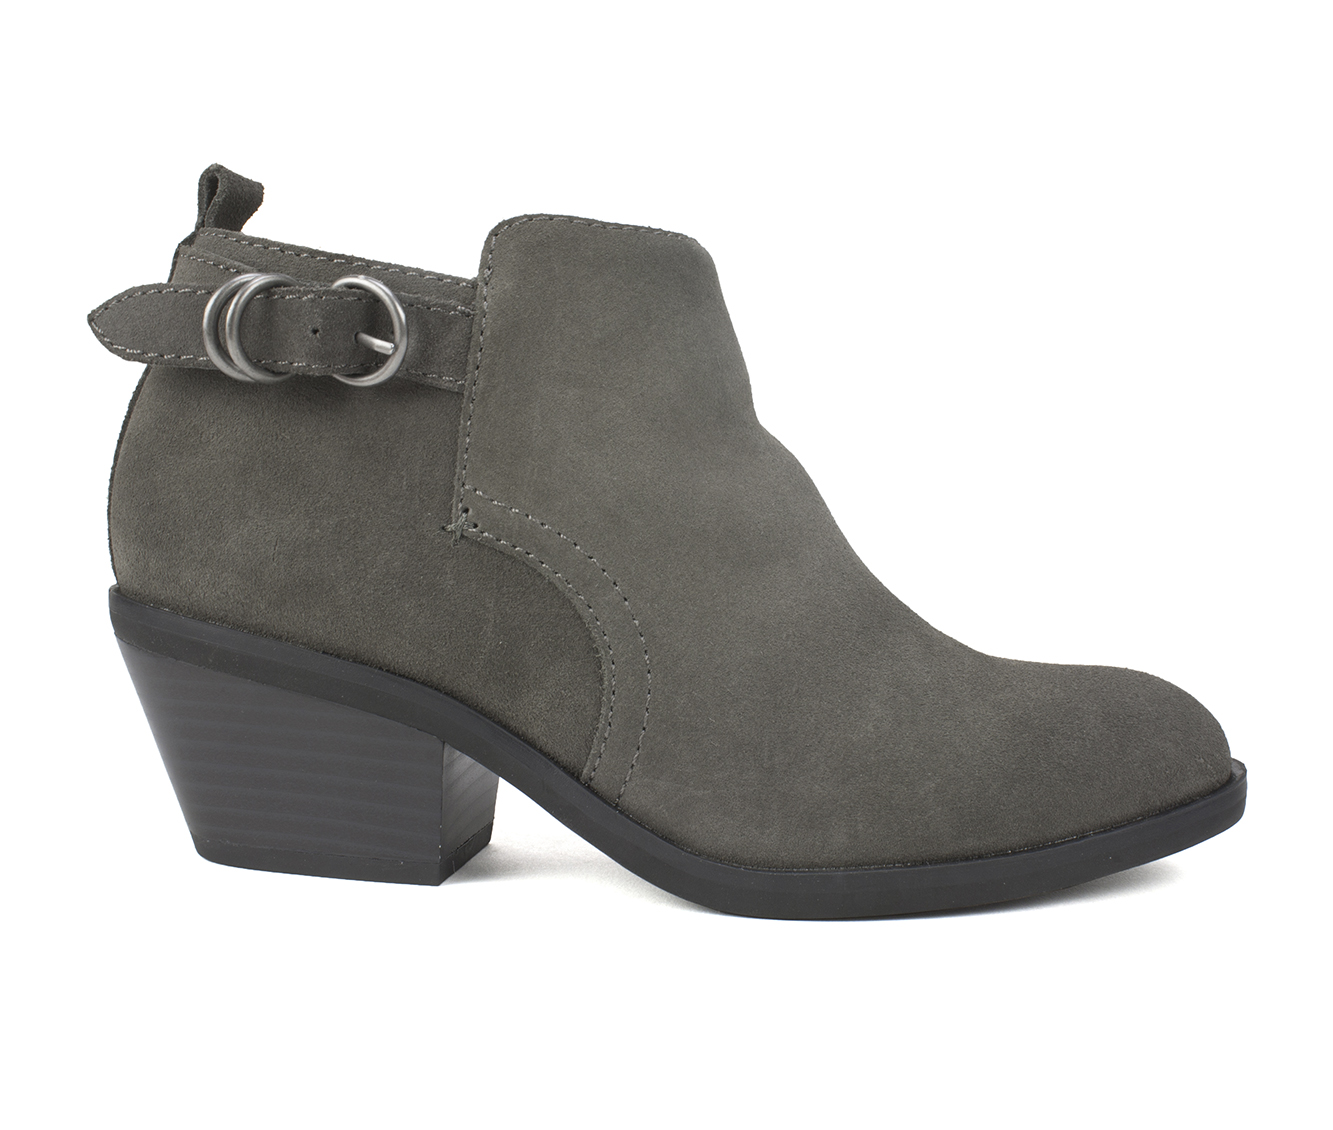 White Mountain Sadie Women's Boots (Gray - Suede)